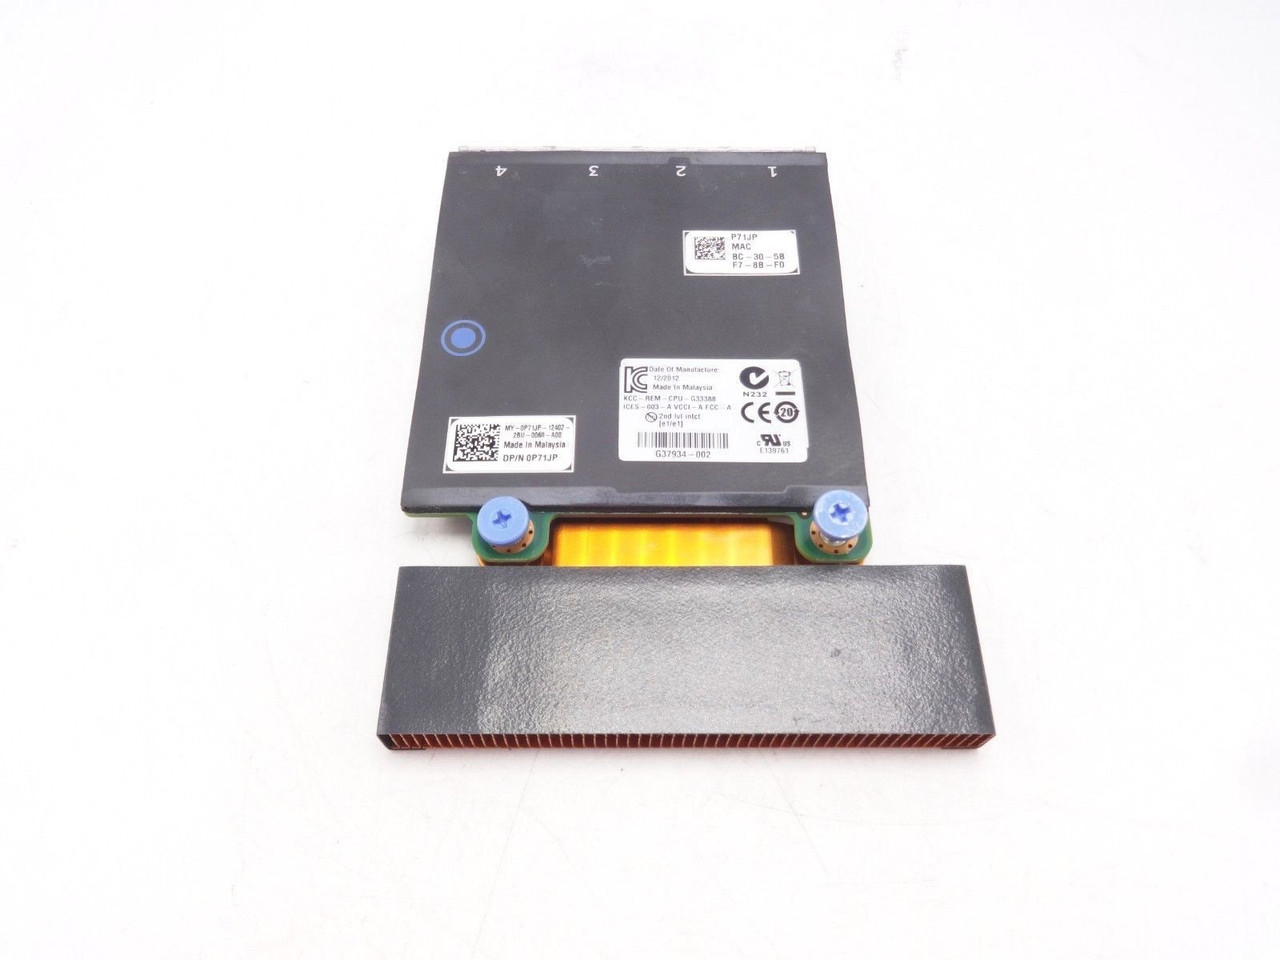 Dell P71JP Intel X540 Quad Port 2x10G I350 2x1G Network Daughter Card